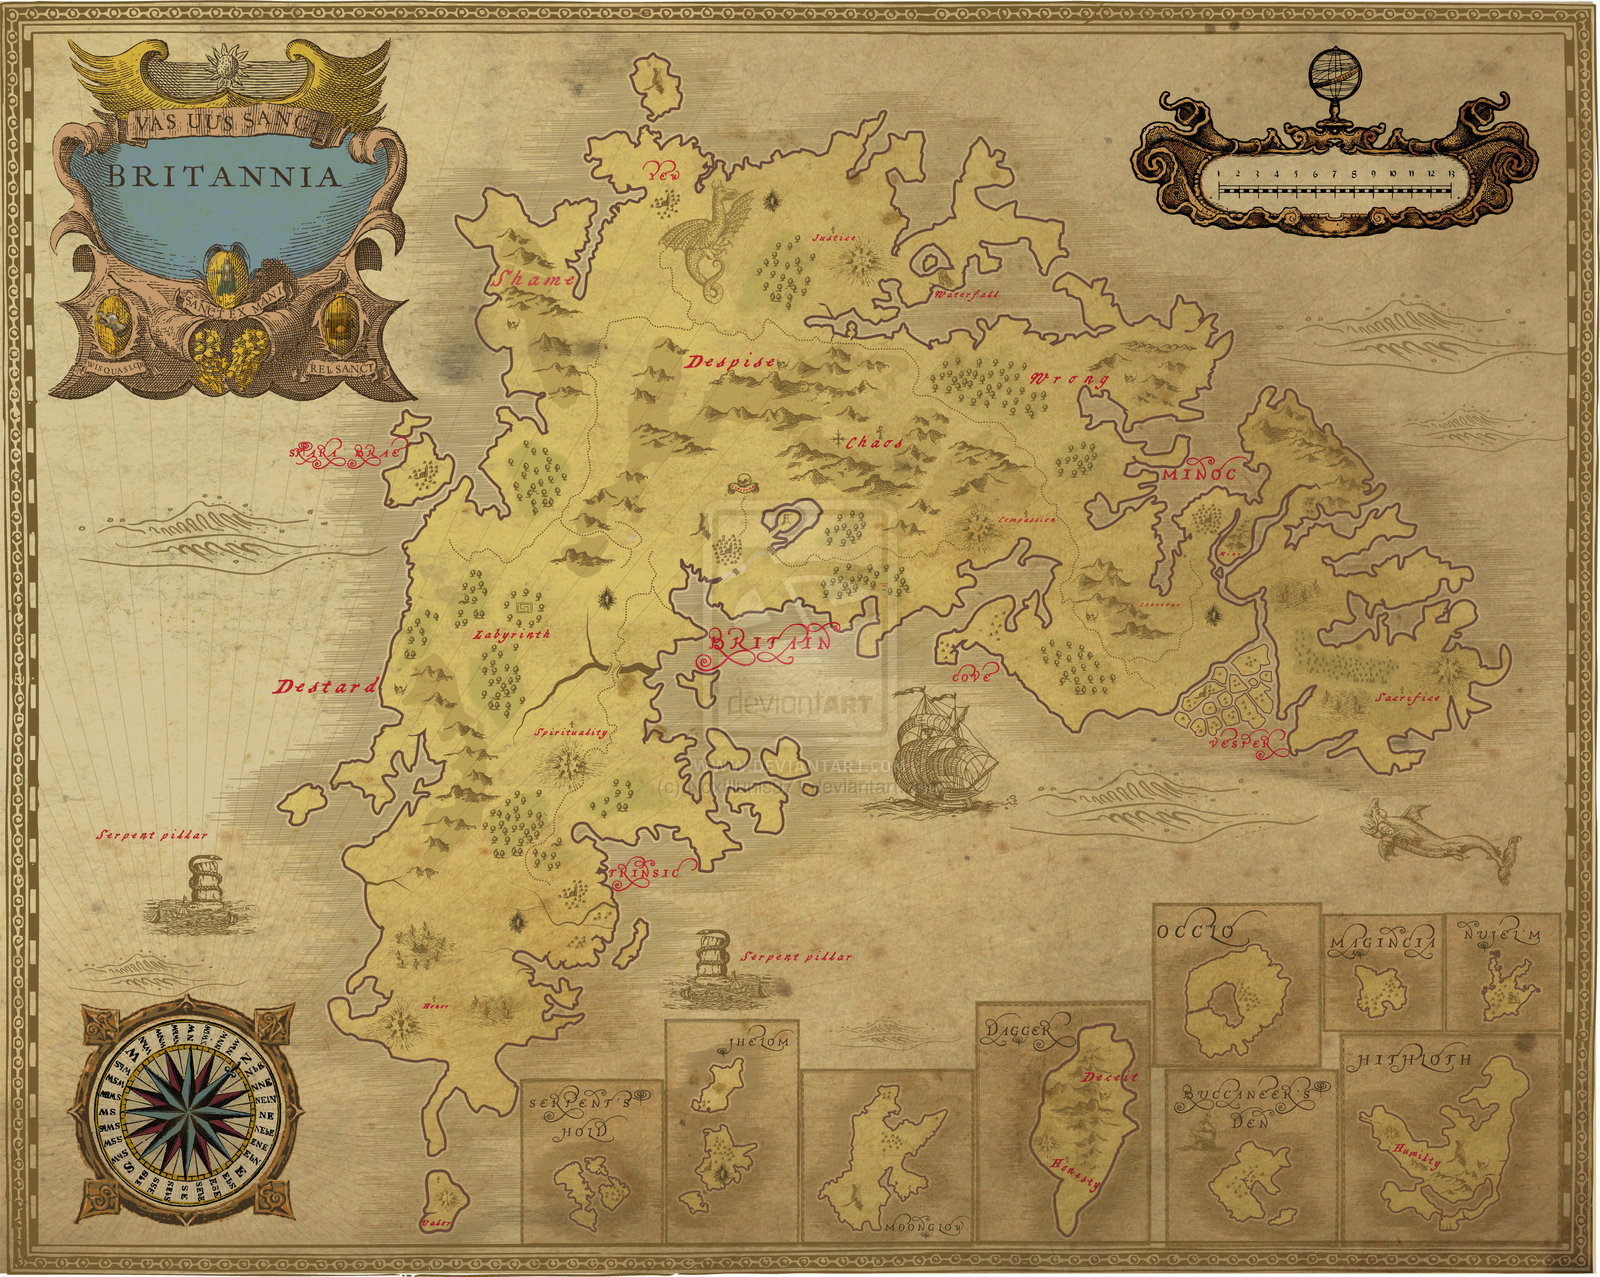 ancient_ultima_online_britannia_map_by_noxillunis971-d4mnkq1.jpg